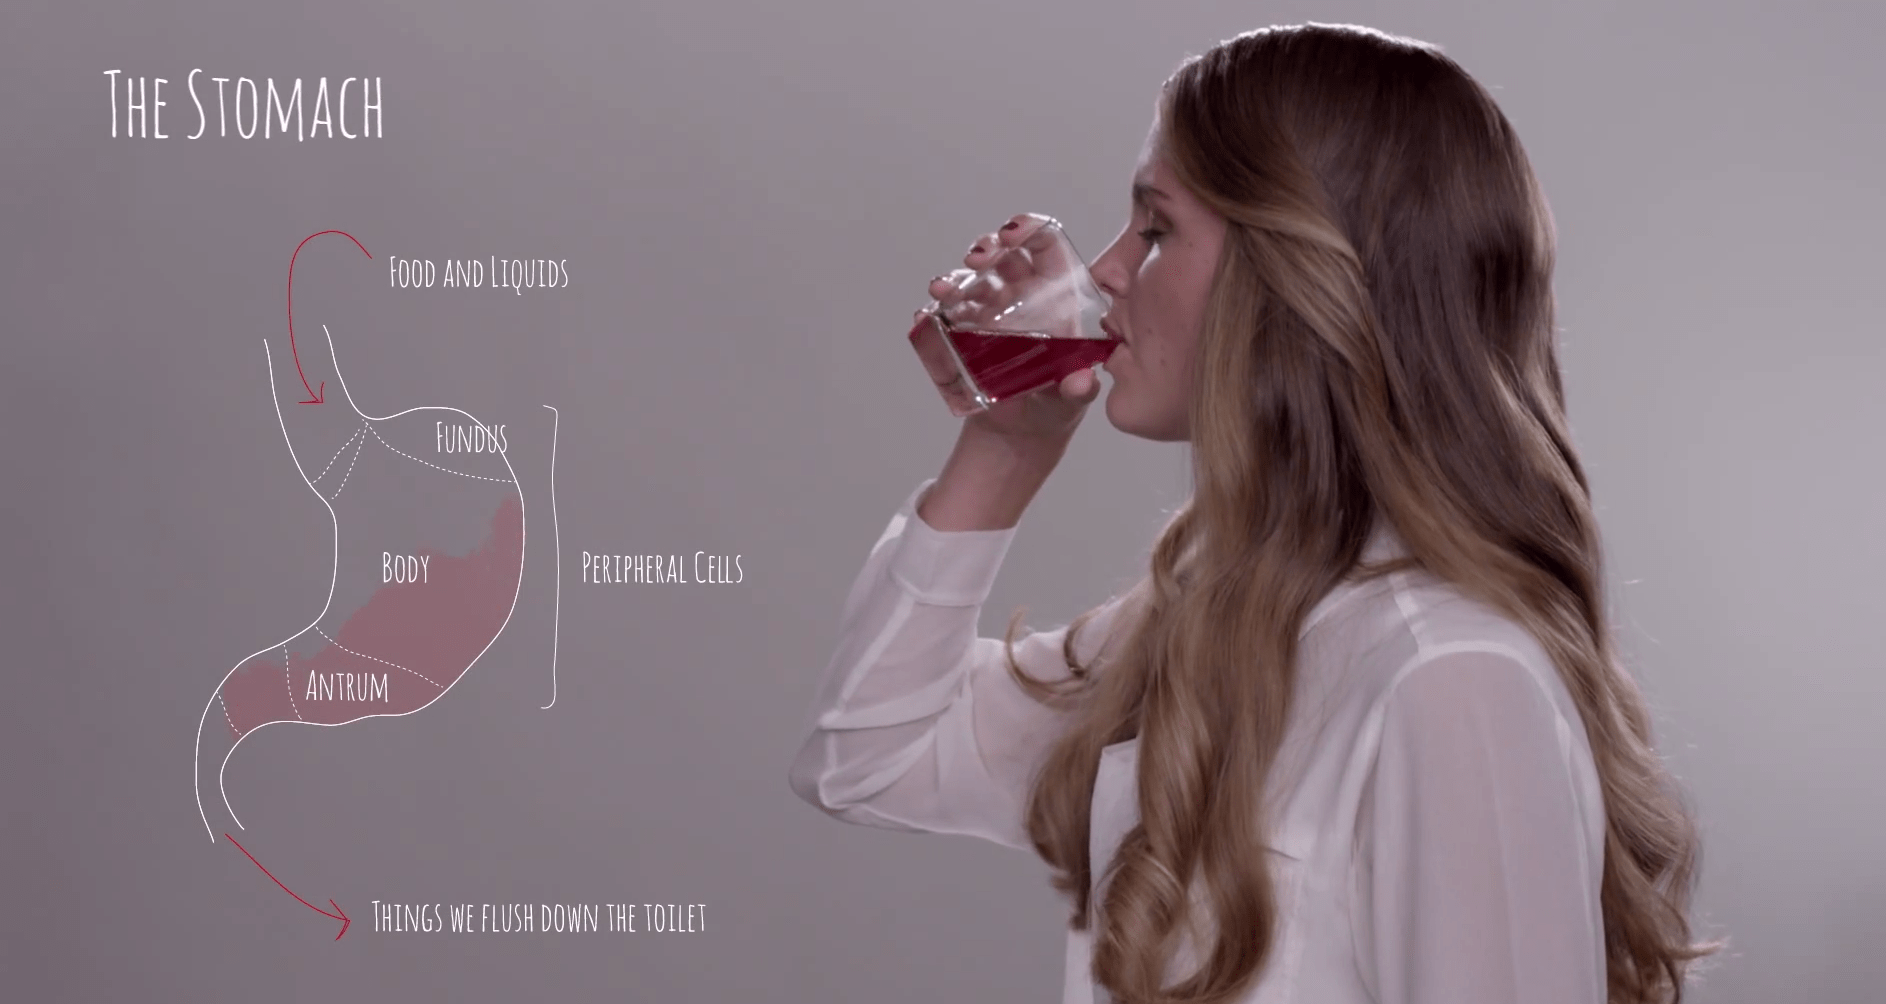 We digest soda quickly and easily without feeling full. Of course, genetics also has to do with how each person interacts with sugar.